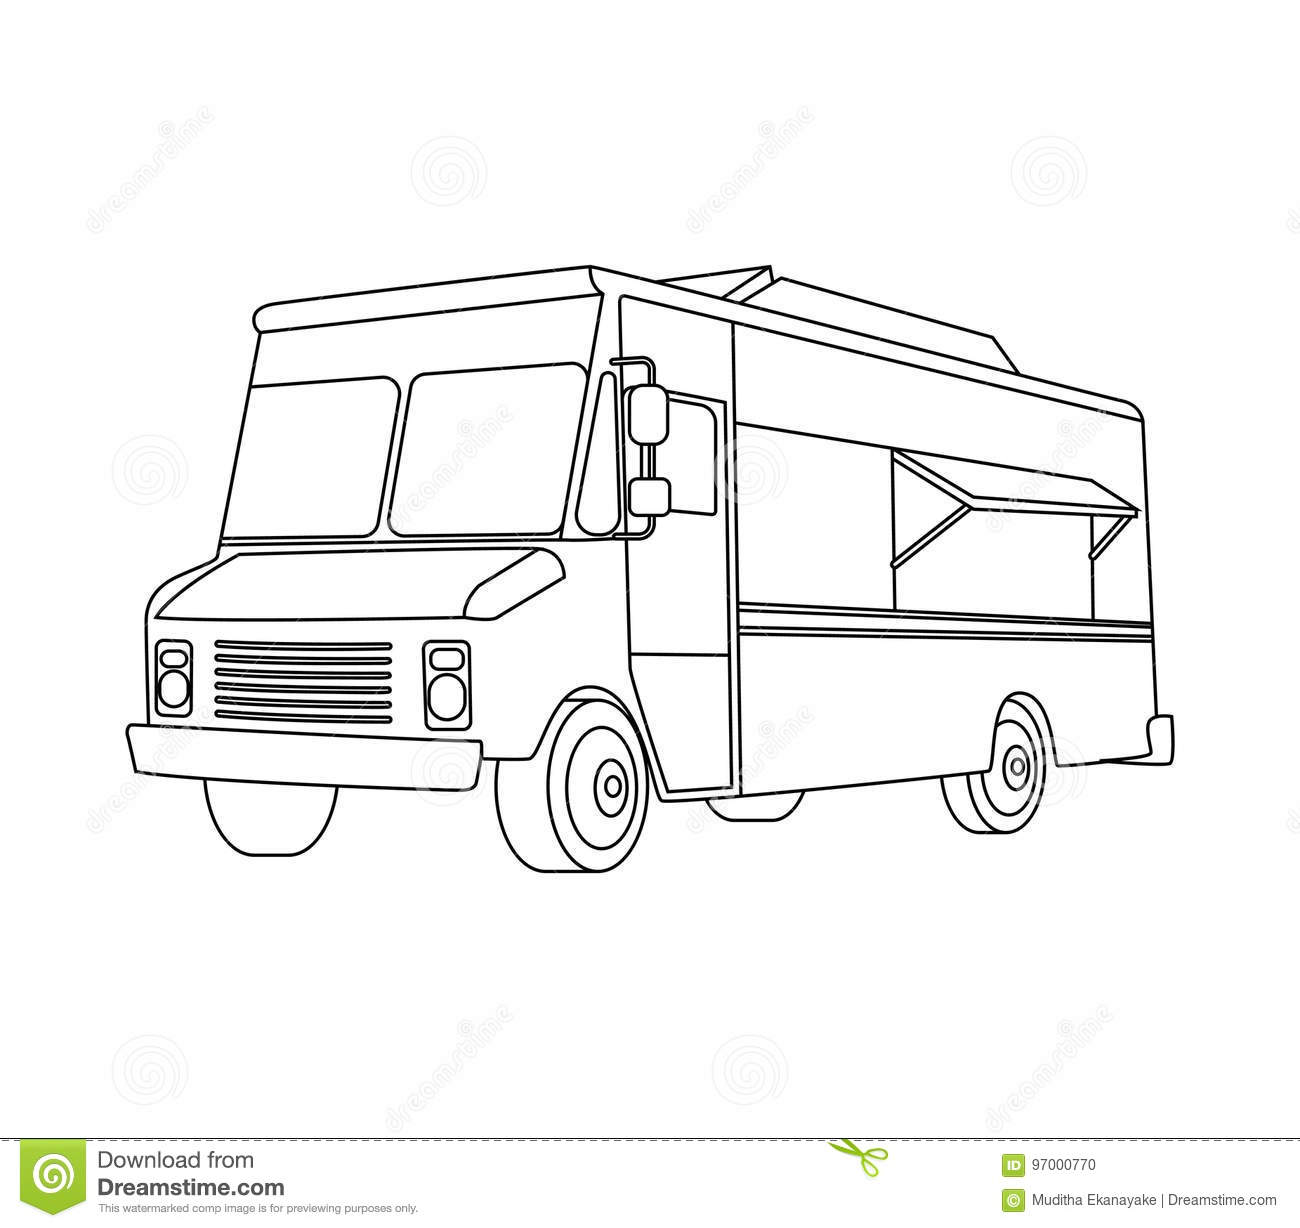 food truck coloring page food truck line art stock vector illustration of fast coloring food truck page